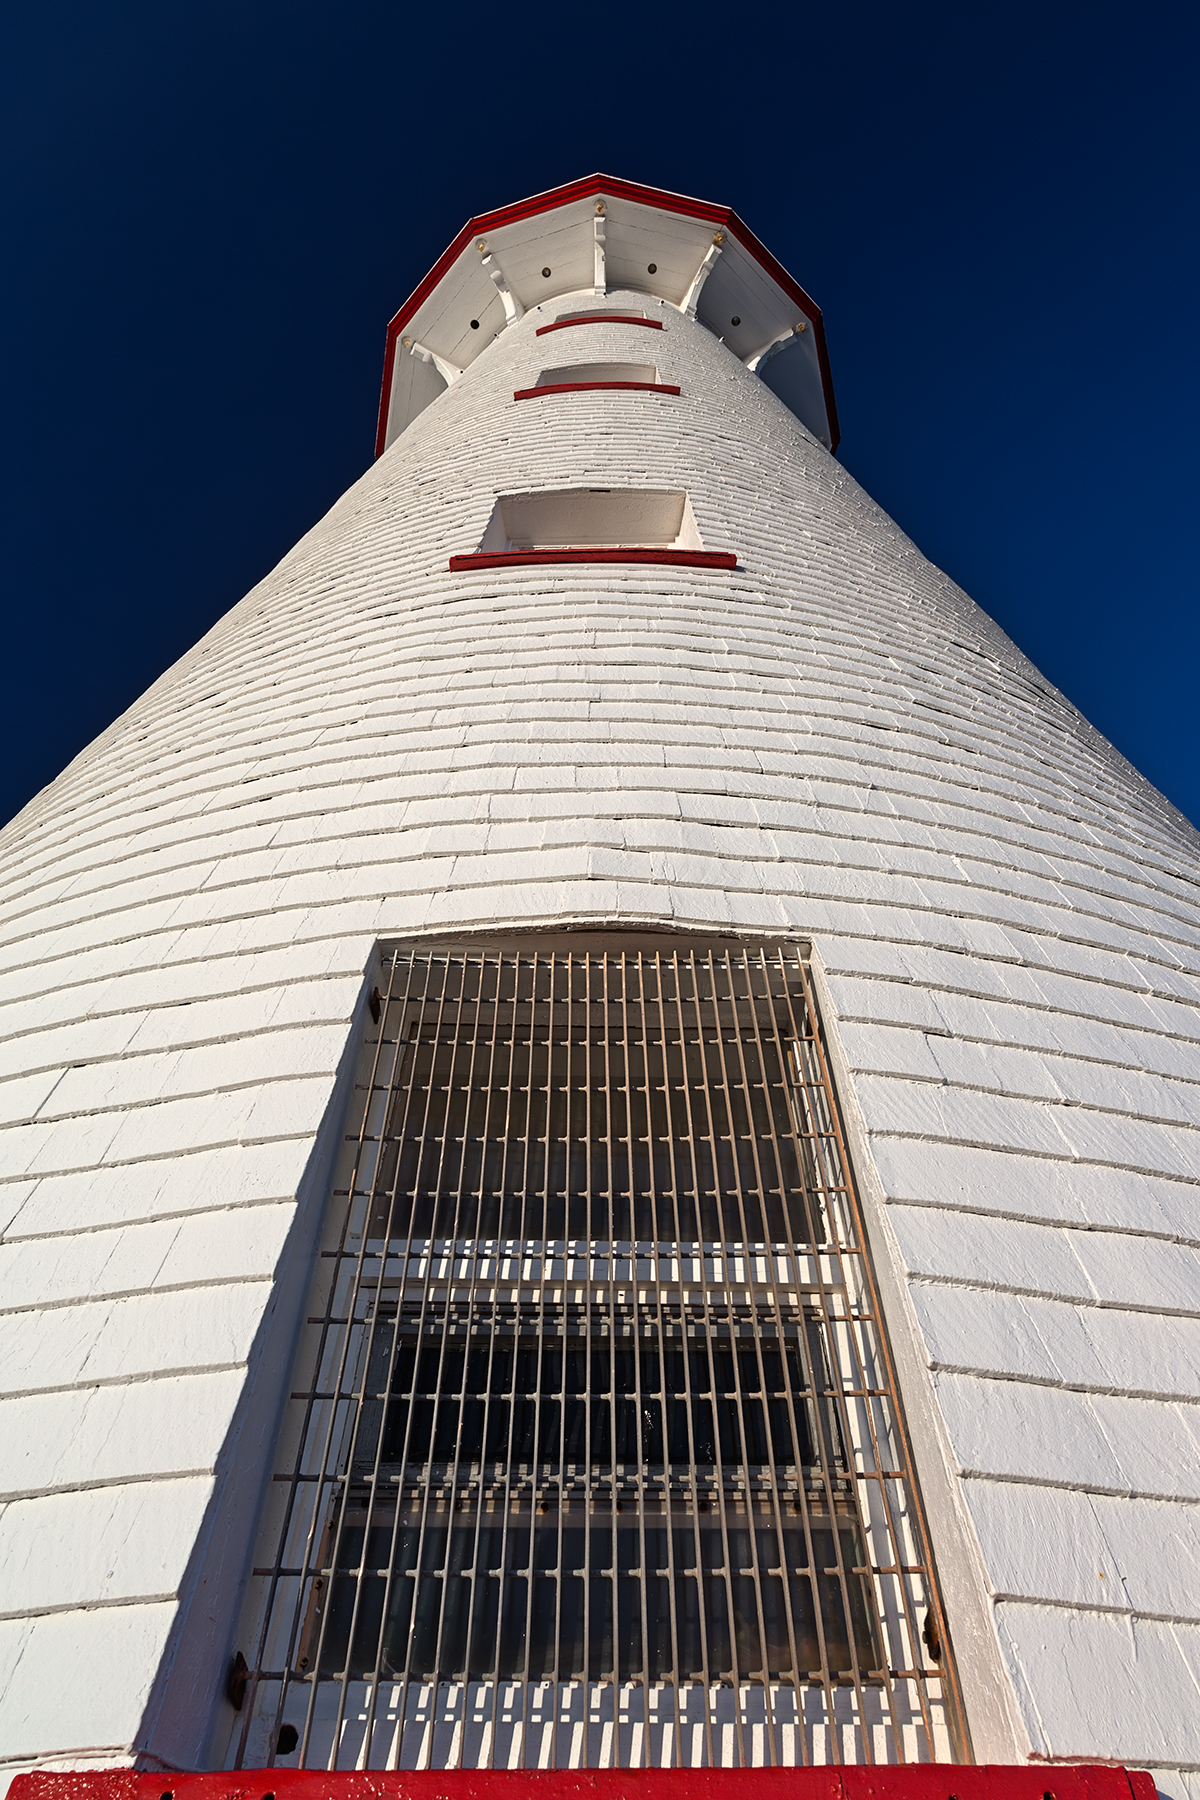 Point prim lighthouse - hdr photo